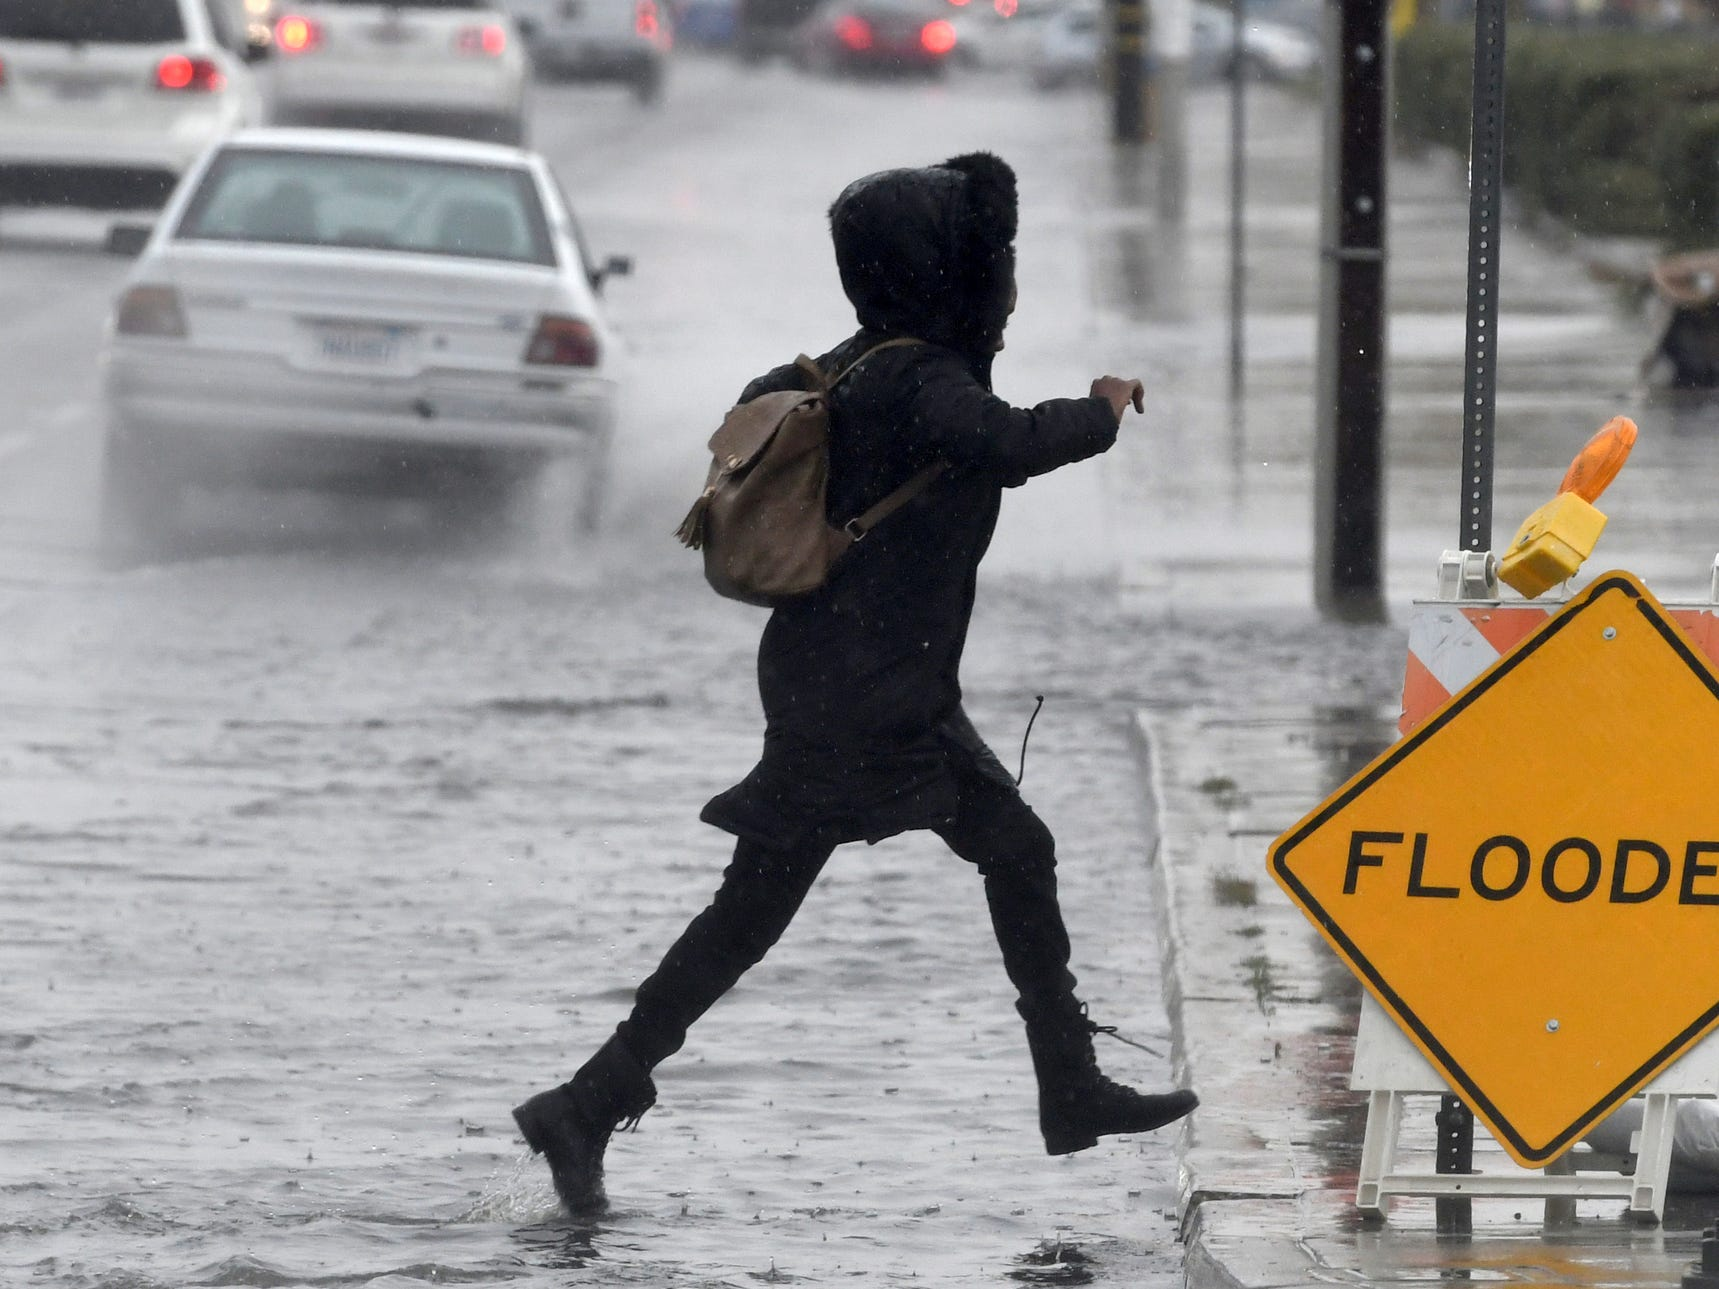 A pedestrian leaps across a flooded portion of the La Paz and Seventh Street intersection as a winter storm arrived, Thursday, Dec. 6, 2018 in Victorville, Calif.